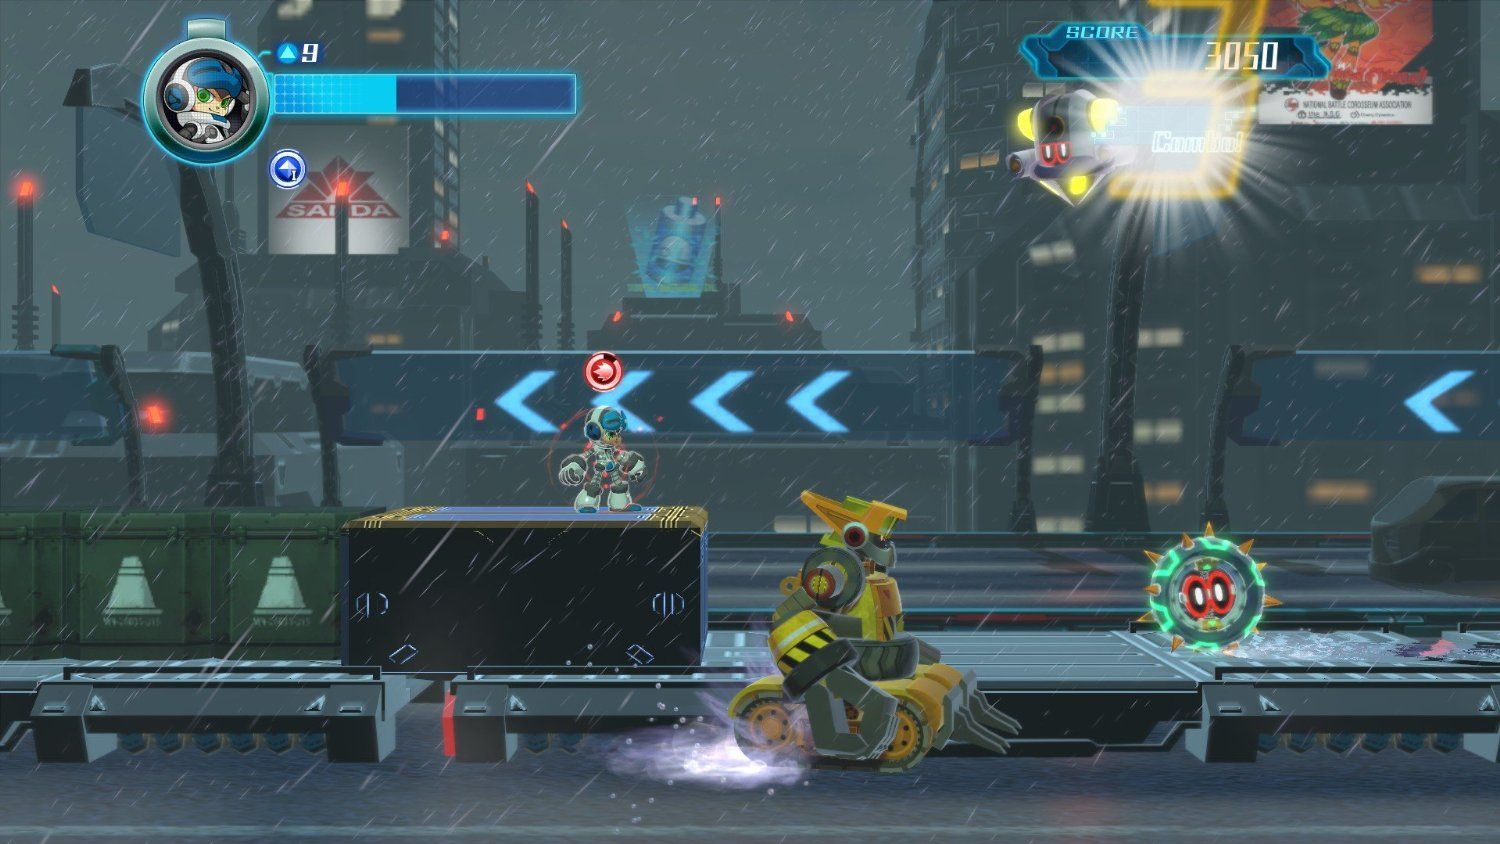 Mighty No 9 (PS4) - 6